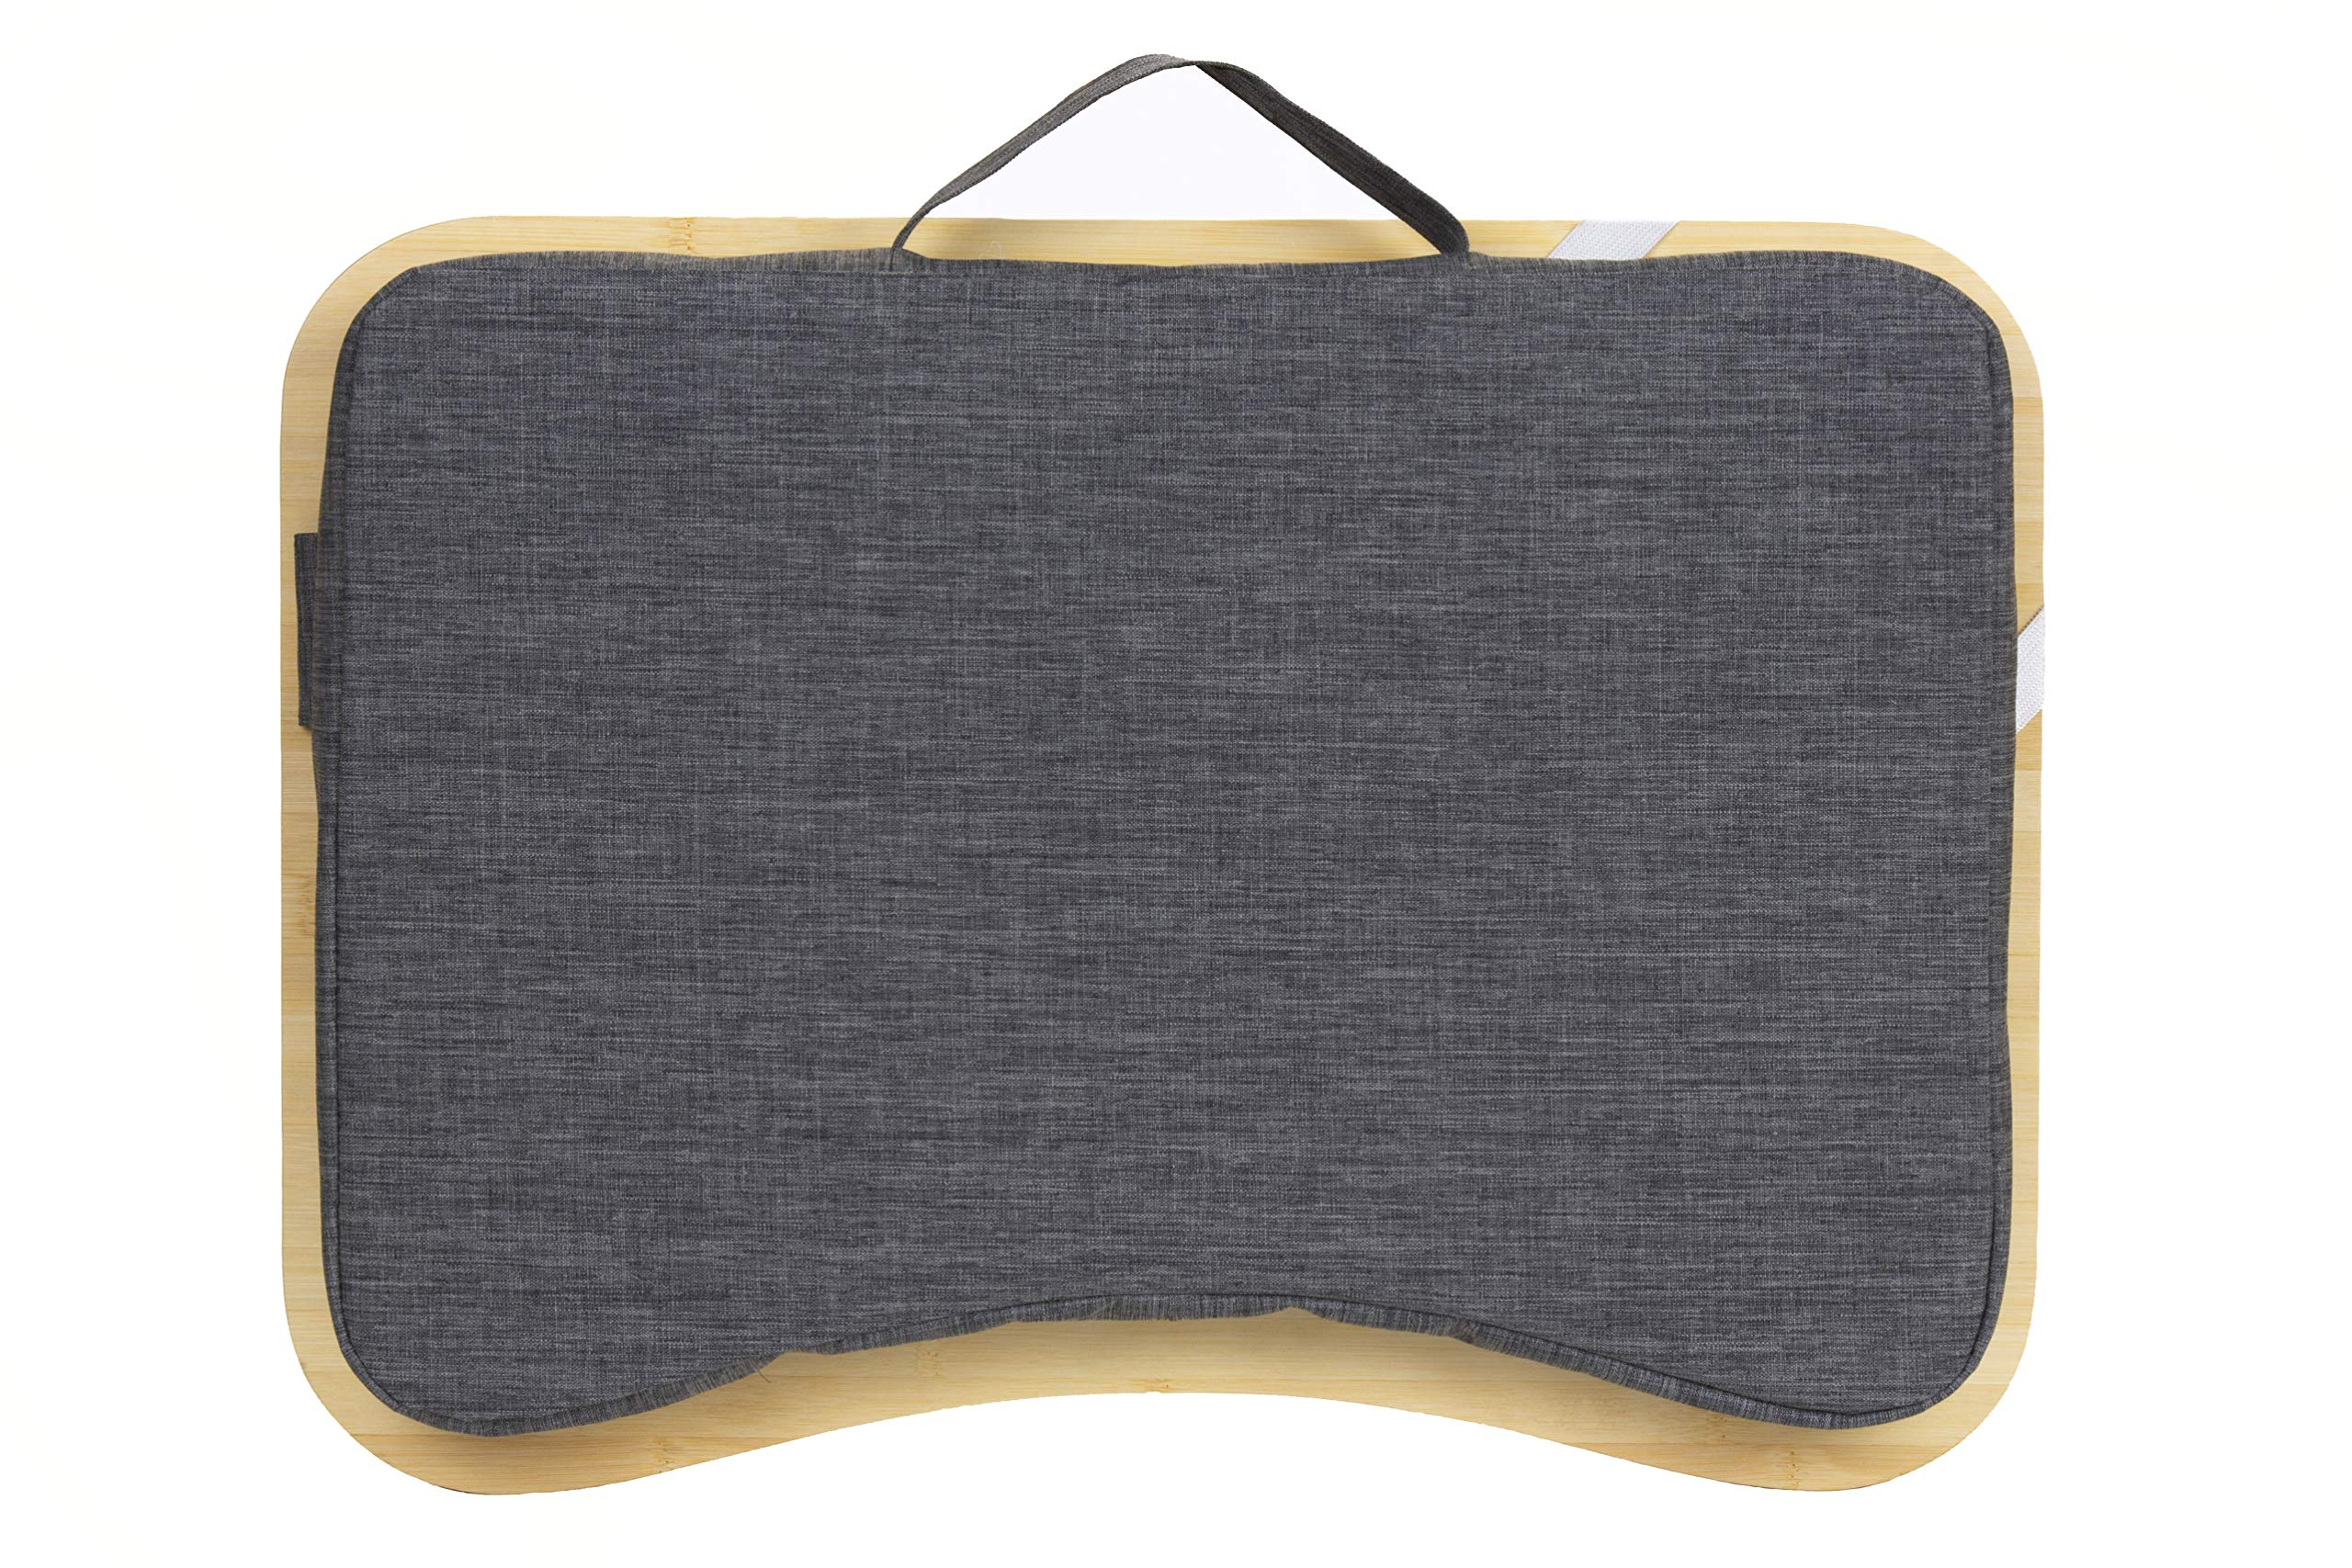 Lap Desk by Hultzzzy - Large 100% Natural Bamboo Surface - Fits up to 17 Inch Laptops - 15'' Tablets - Pen & Phone Holder - Mouse Pad Accessible - Cushion Foundation by Hultzzzy (Image #7)